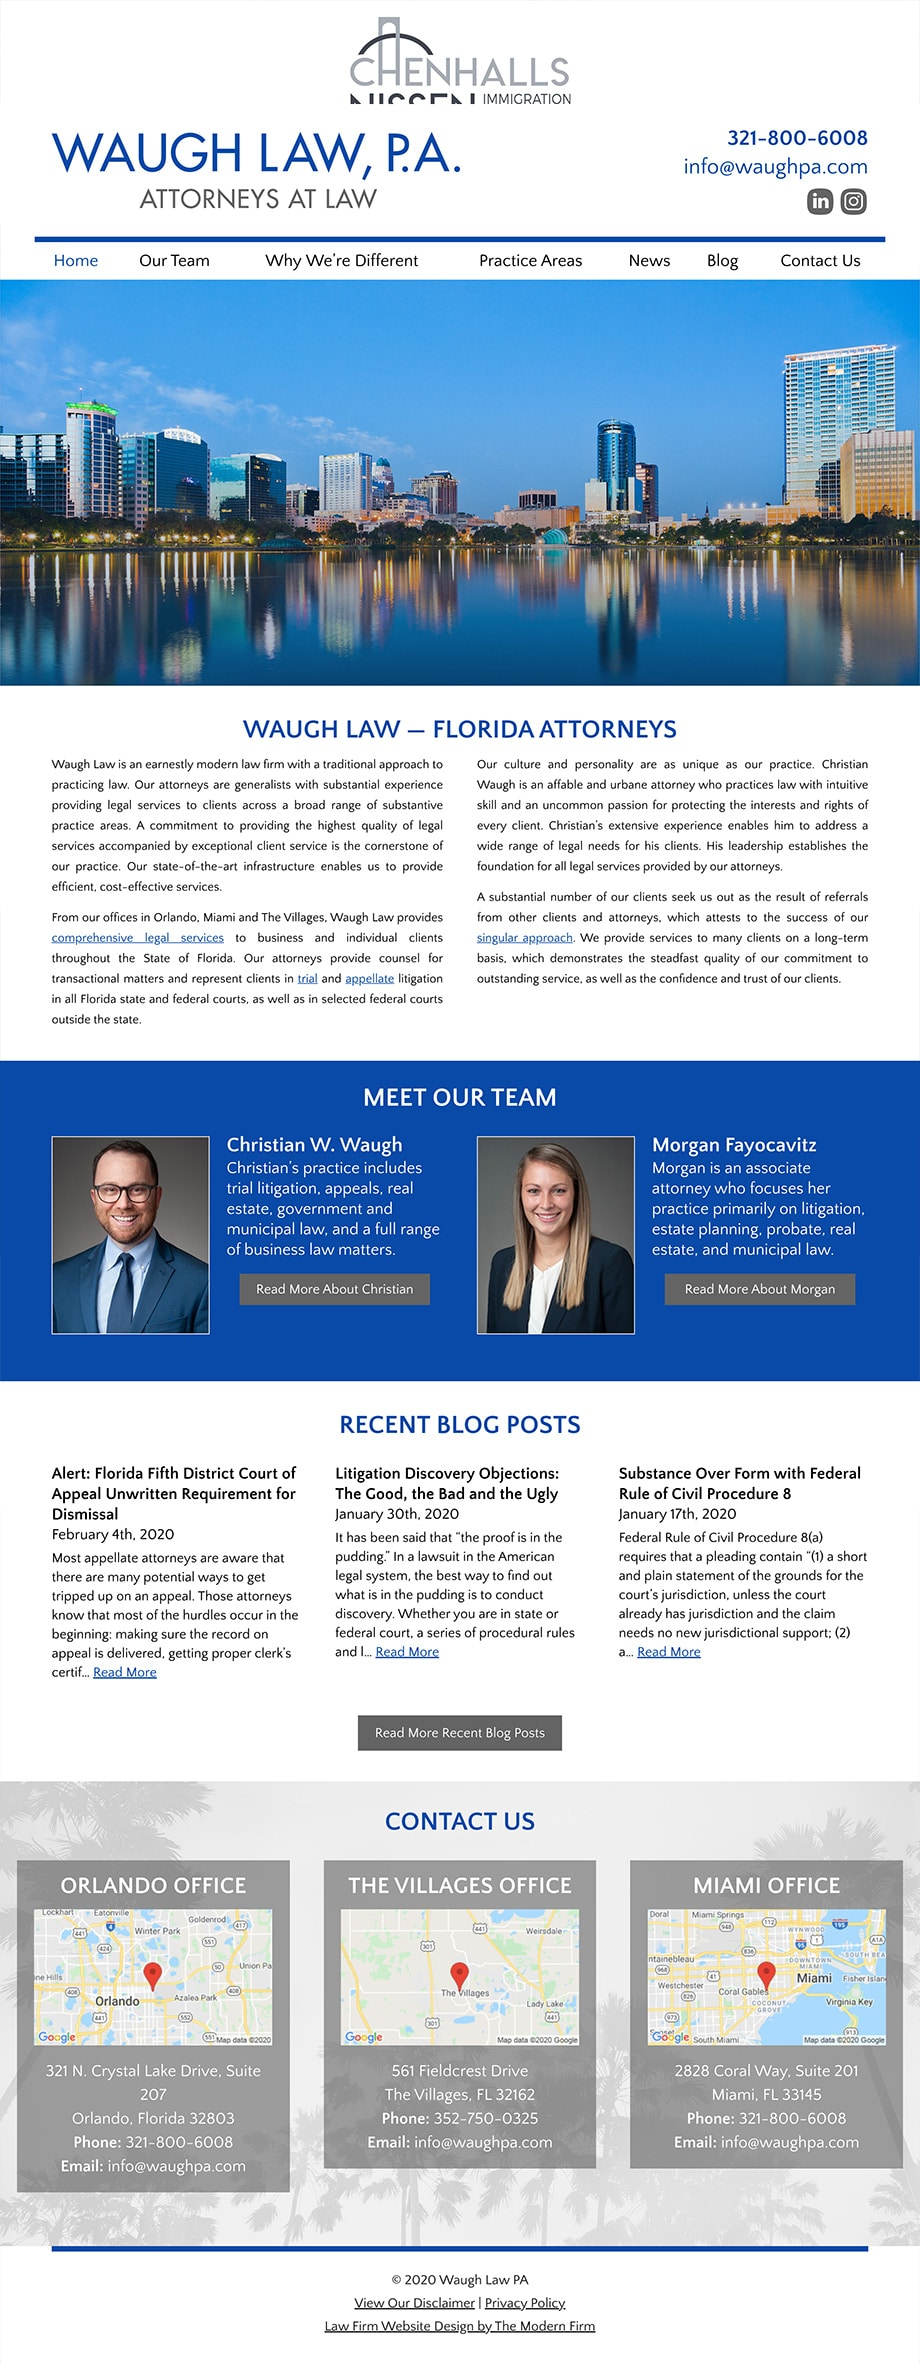 Law Firm Website Design for Waugh Law PA